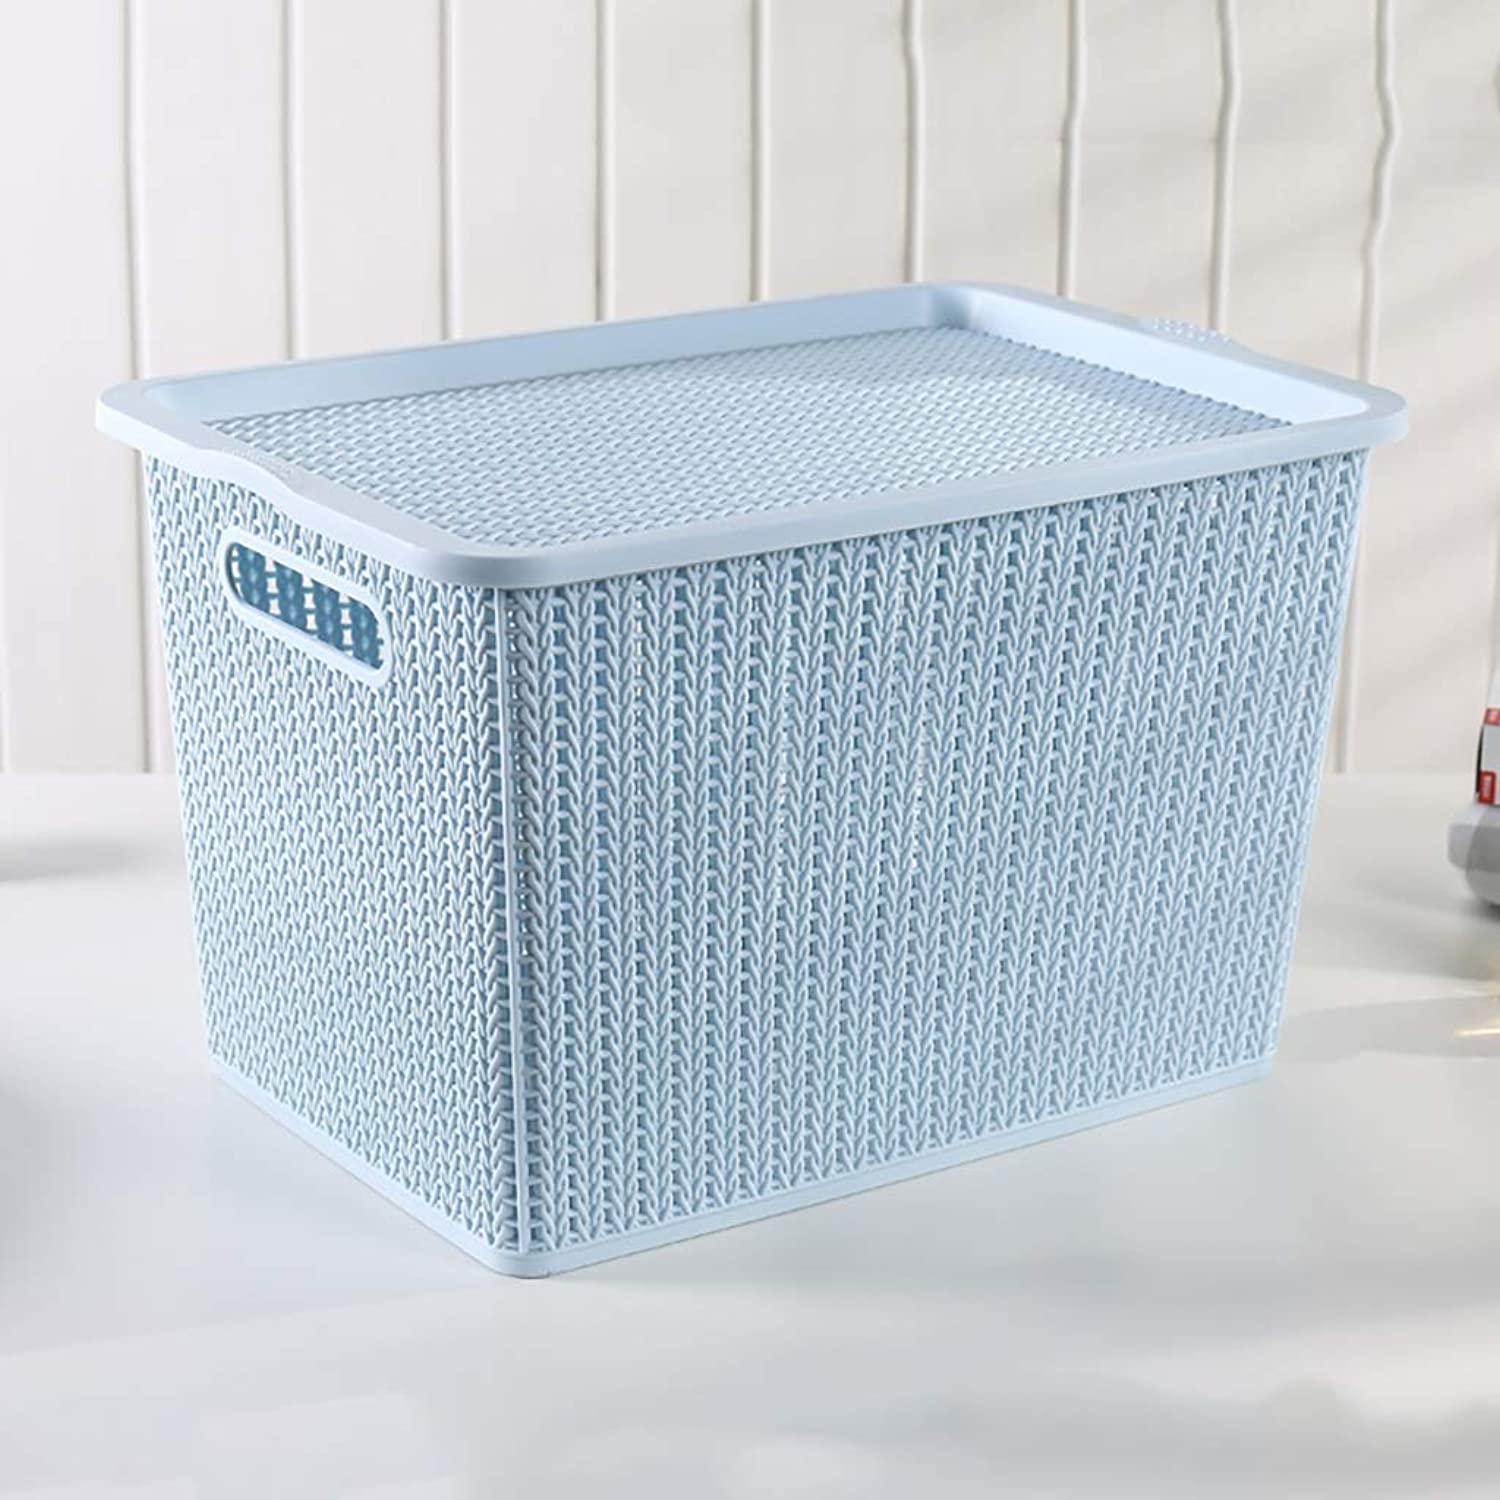 FANGFA Storage Baskets Plastic Living Room Desktop Fruit Snack Finishing Box with Lid (6 colors,3 (color   bluee, Size   41  27.5  25.6cm)